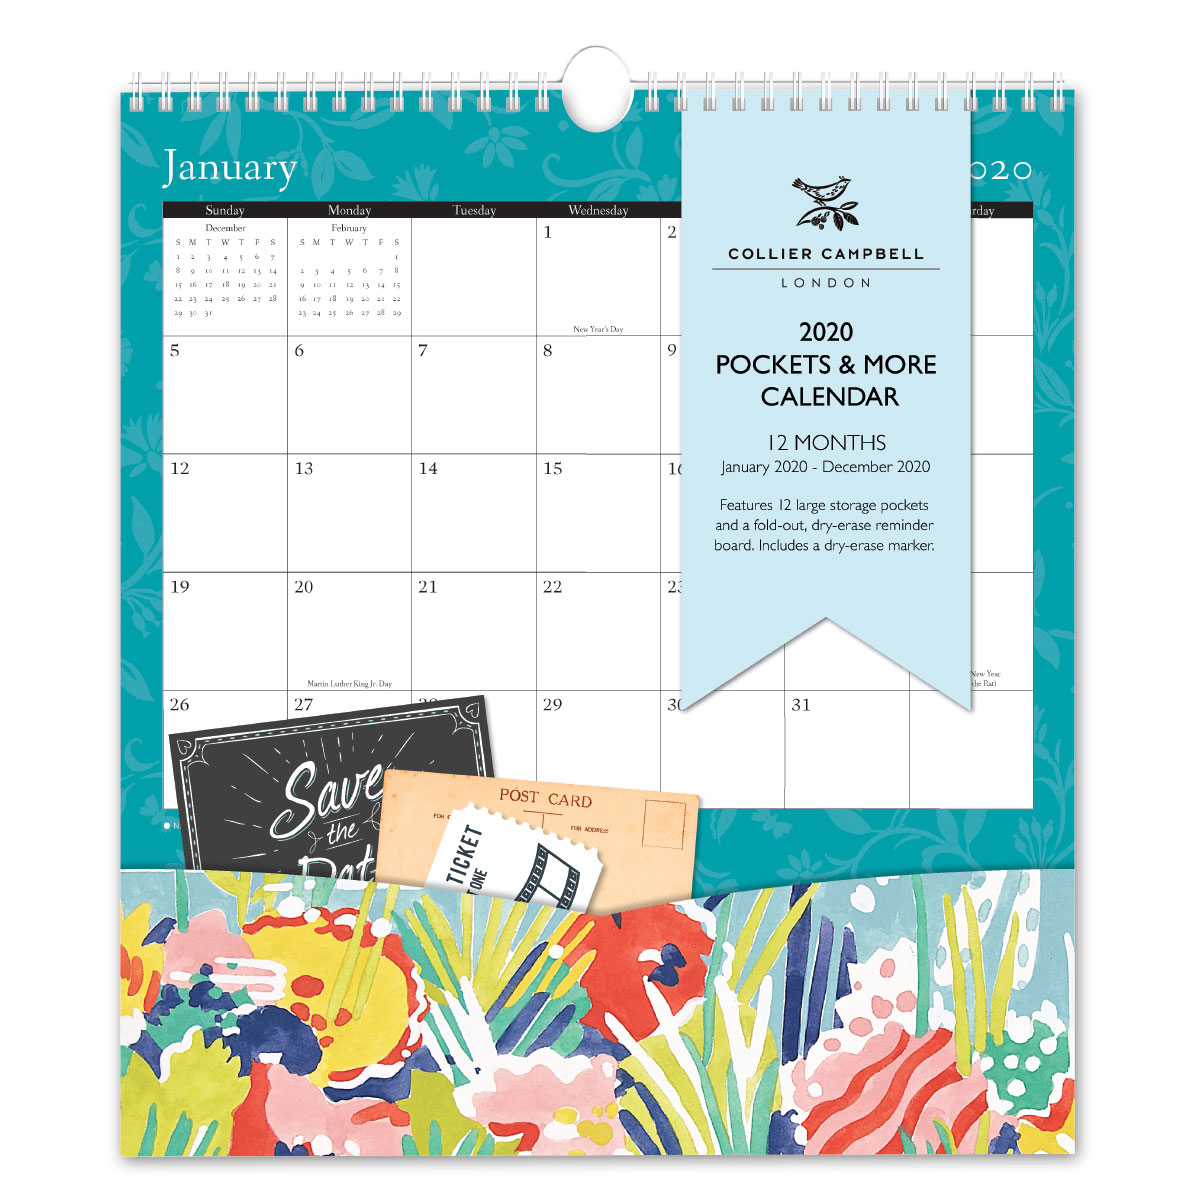 Collier Campbell Pockets & More Calendar Front